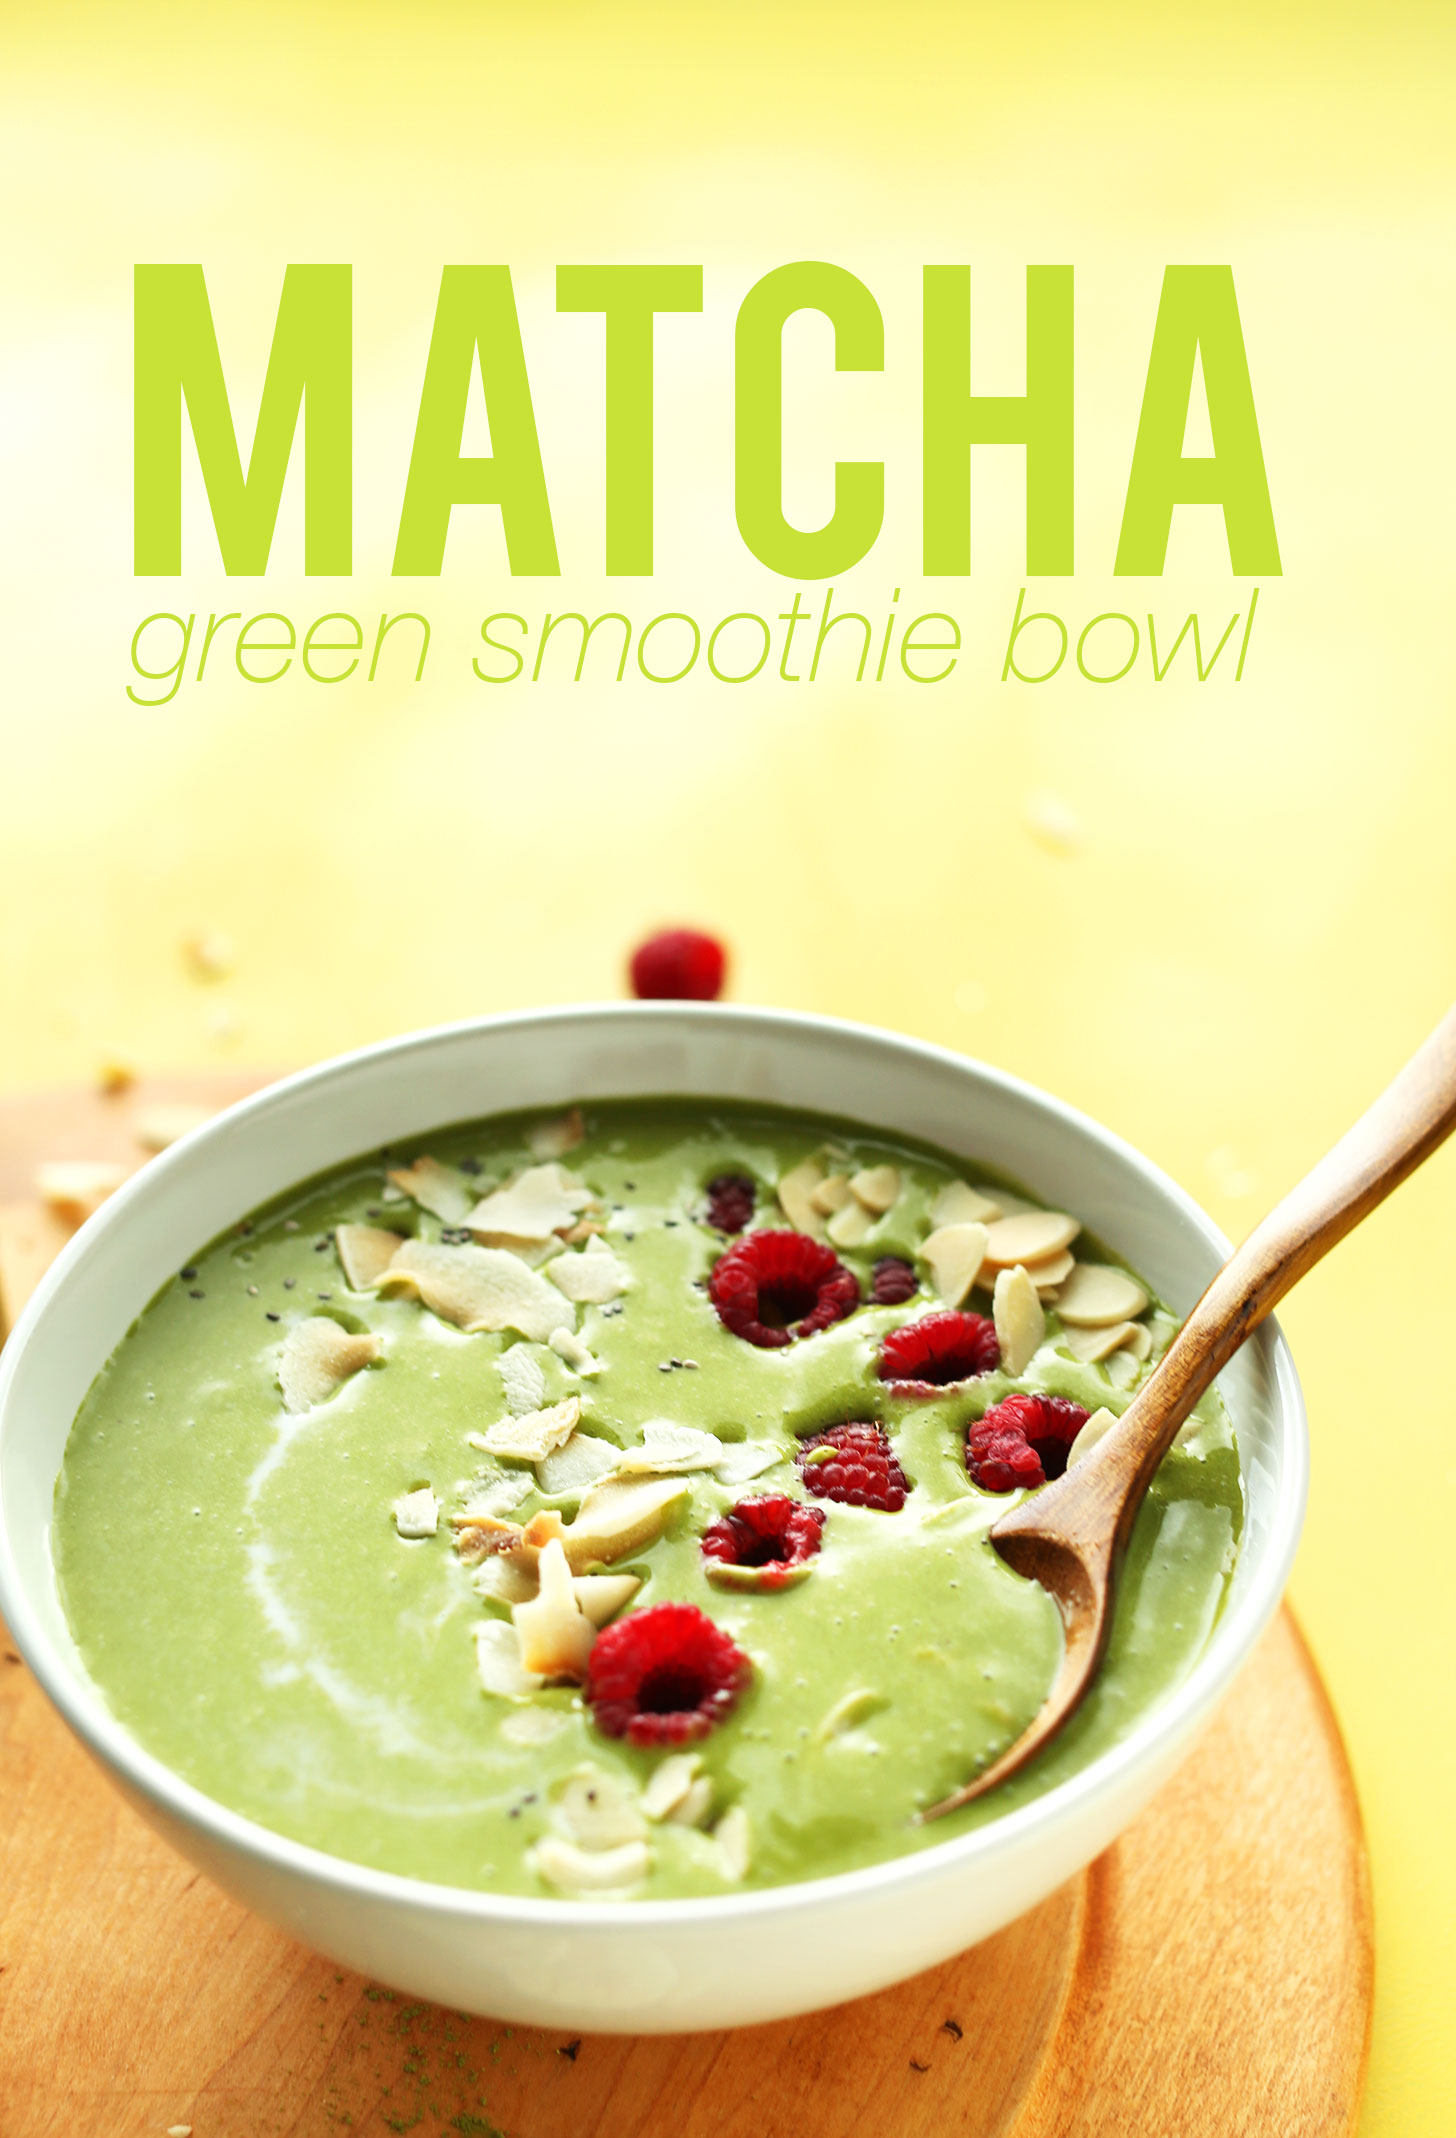 CREAMY, Refreshing MATCHA Green Smoothie Bowl! 4 ingredients, creamy, naturally sweet, SO delicious! #veagn #glutenfree #plantbased #matcha #greensmoothie #recipe #breakfast #minimalistbaker